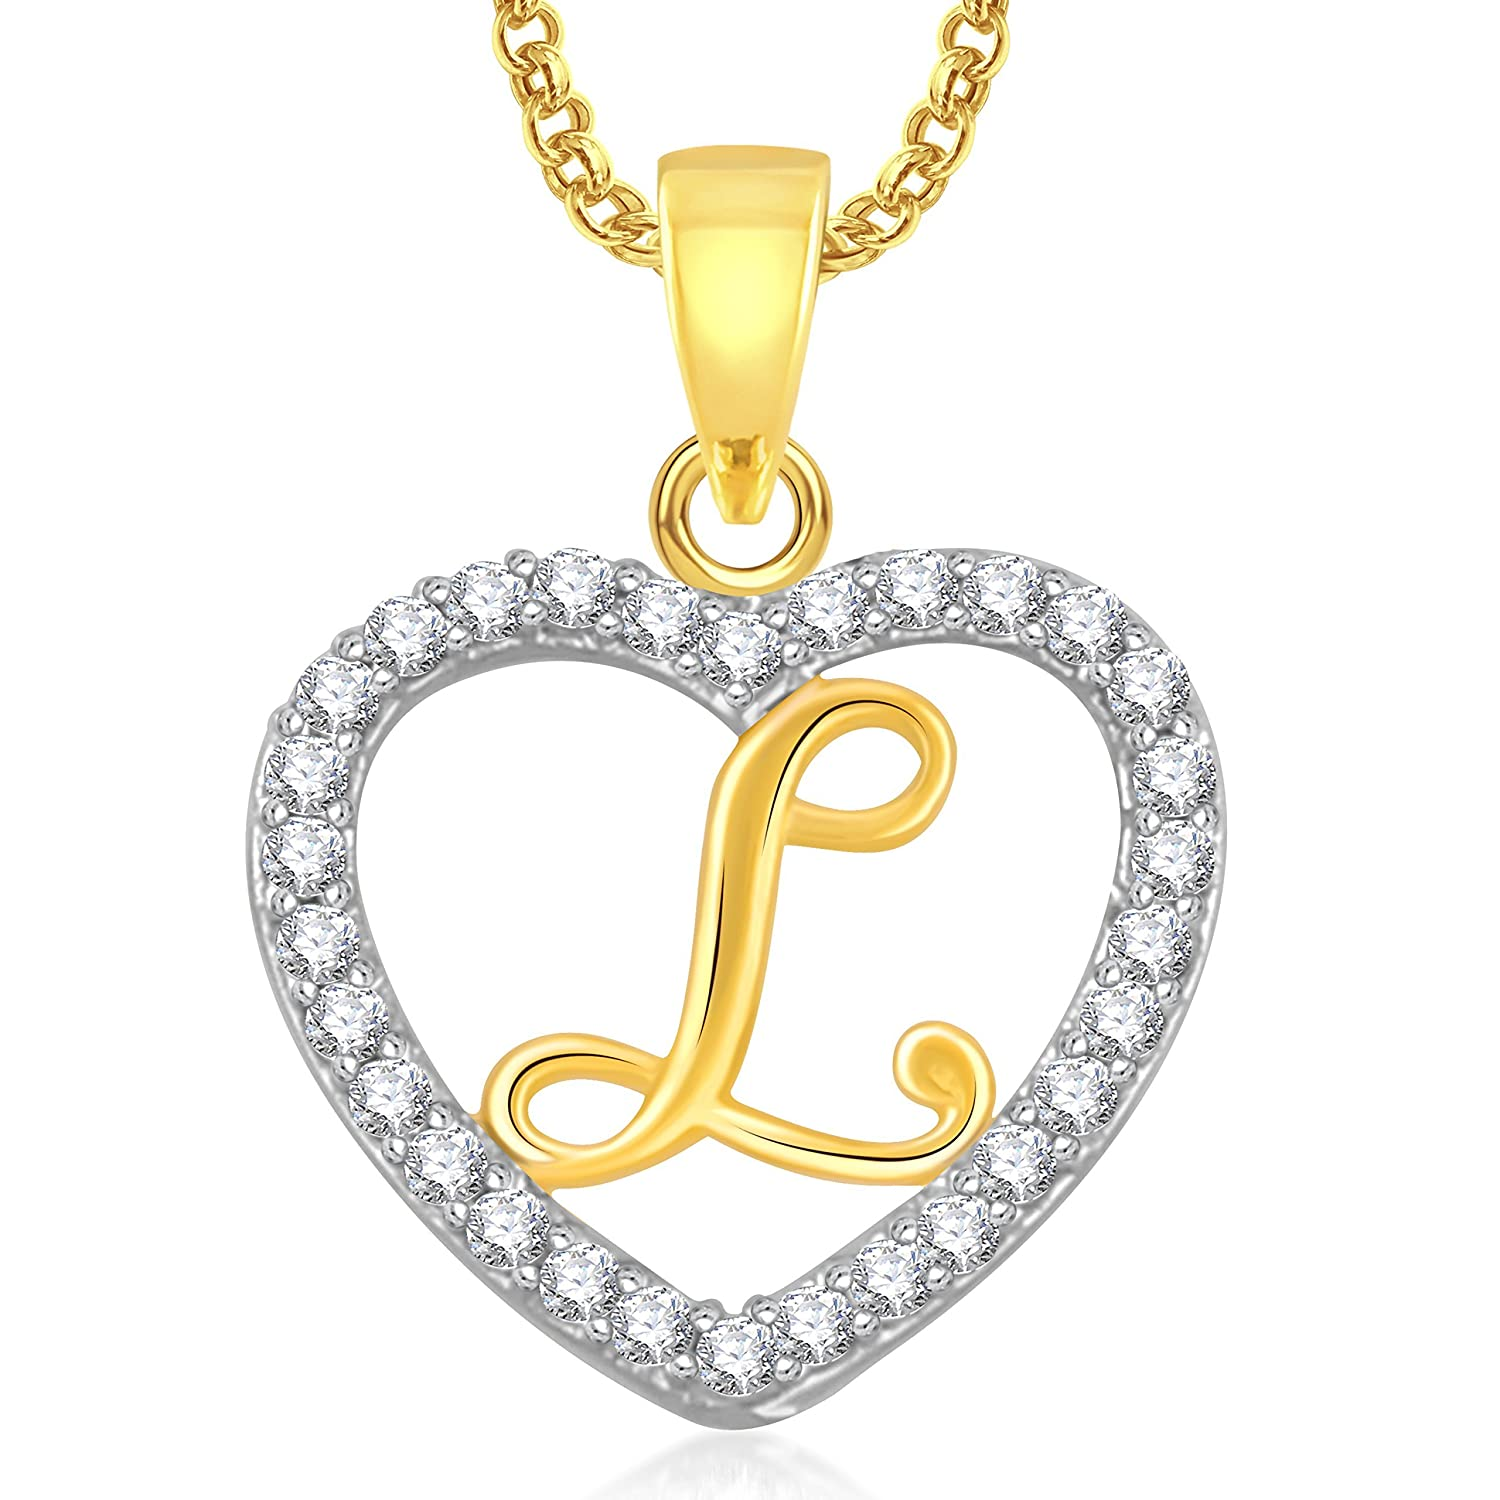 dp plated pendant shape love and in india heart online low with gold for meenaz girls chain lockets women buy locket amazon prices at diamond long american